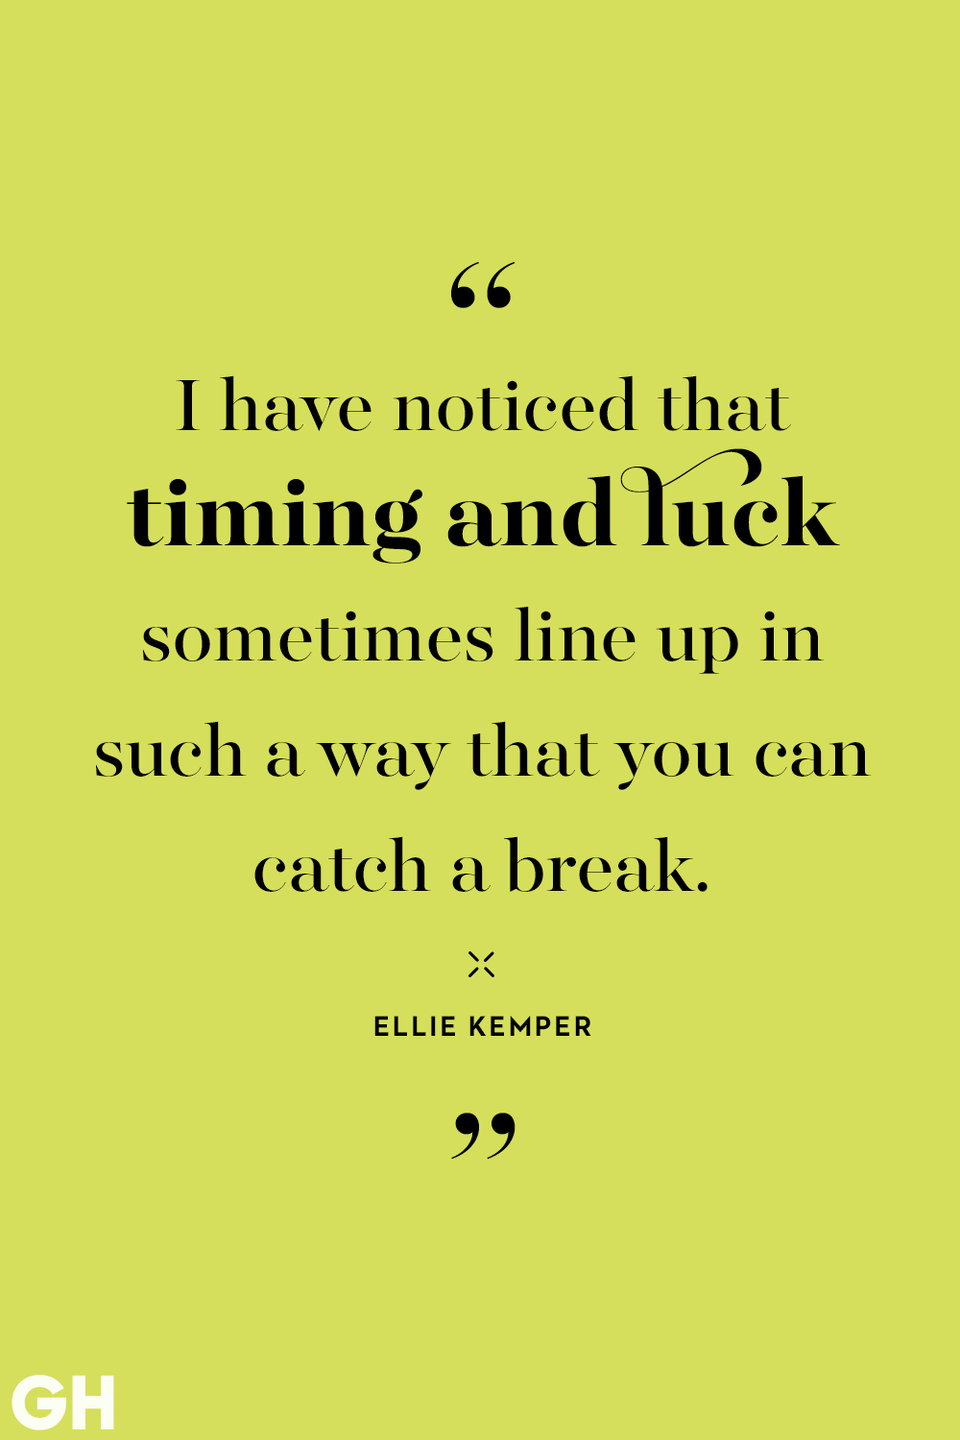 "<p>""I have noticed that timing and luck sometimes line up in such a way that you can catch a break.""</p>"